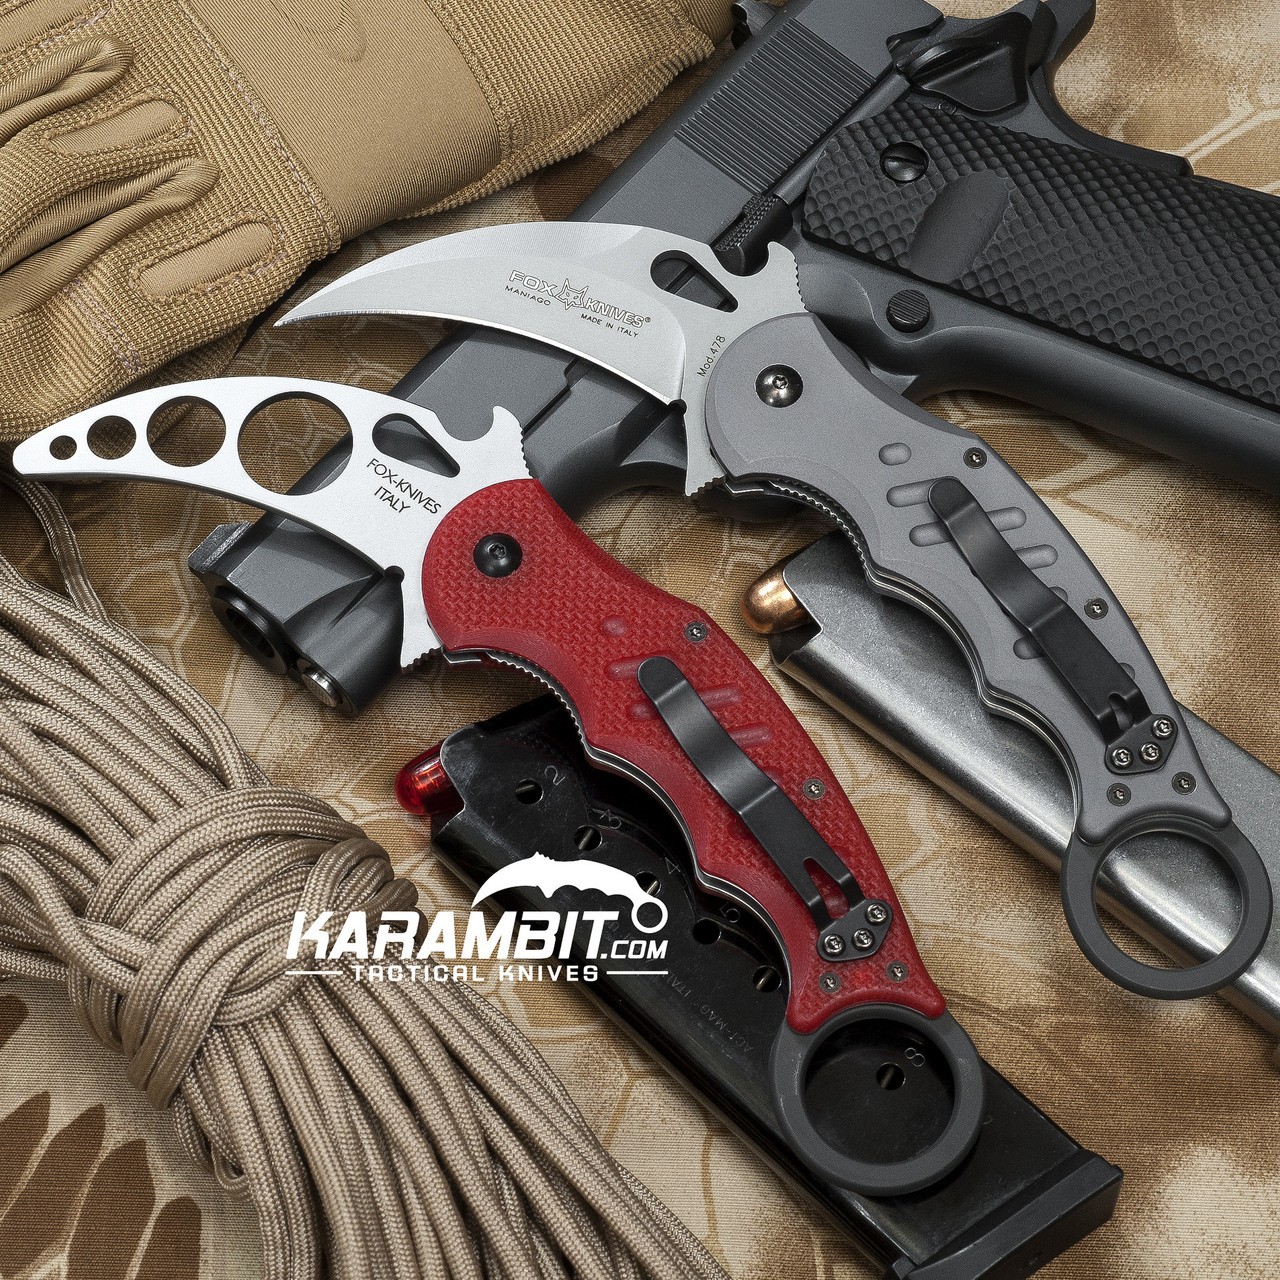 Karambit knife: photo, price, drawing and diagram. How to make a knife karambit do it yourself 98